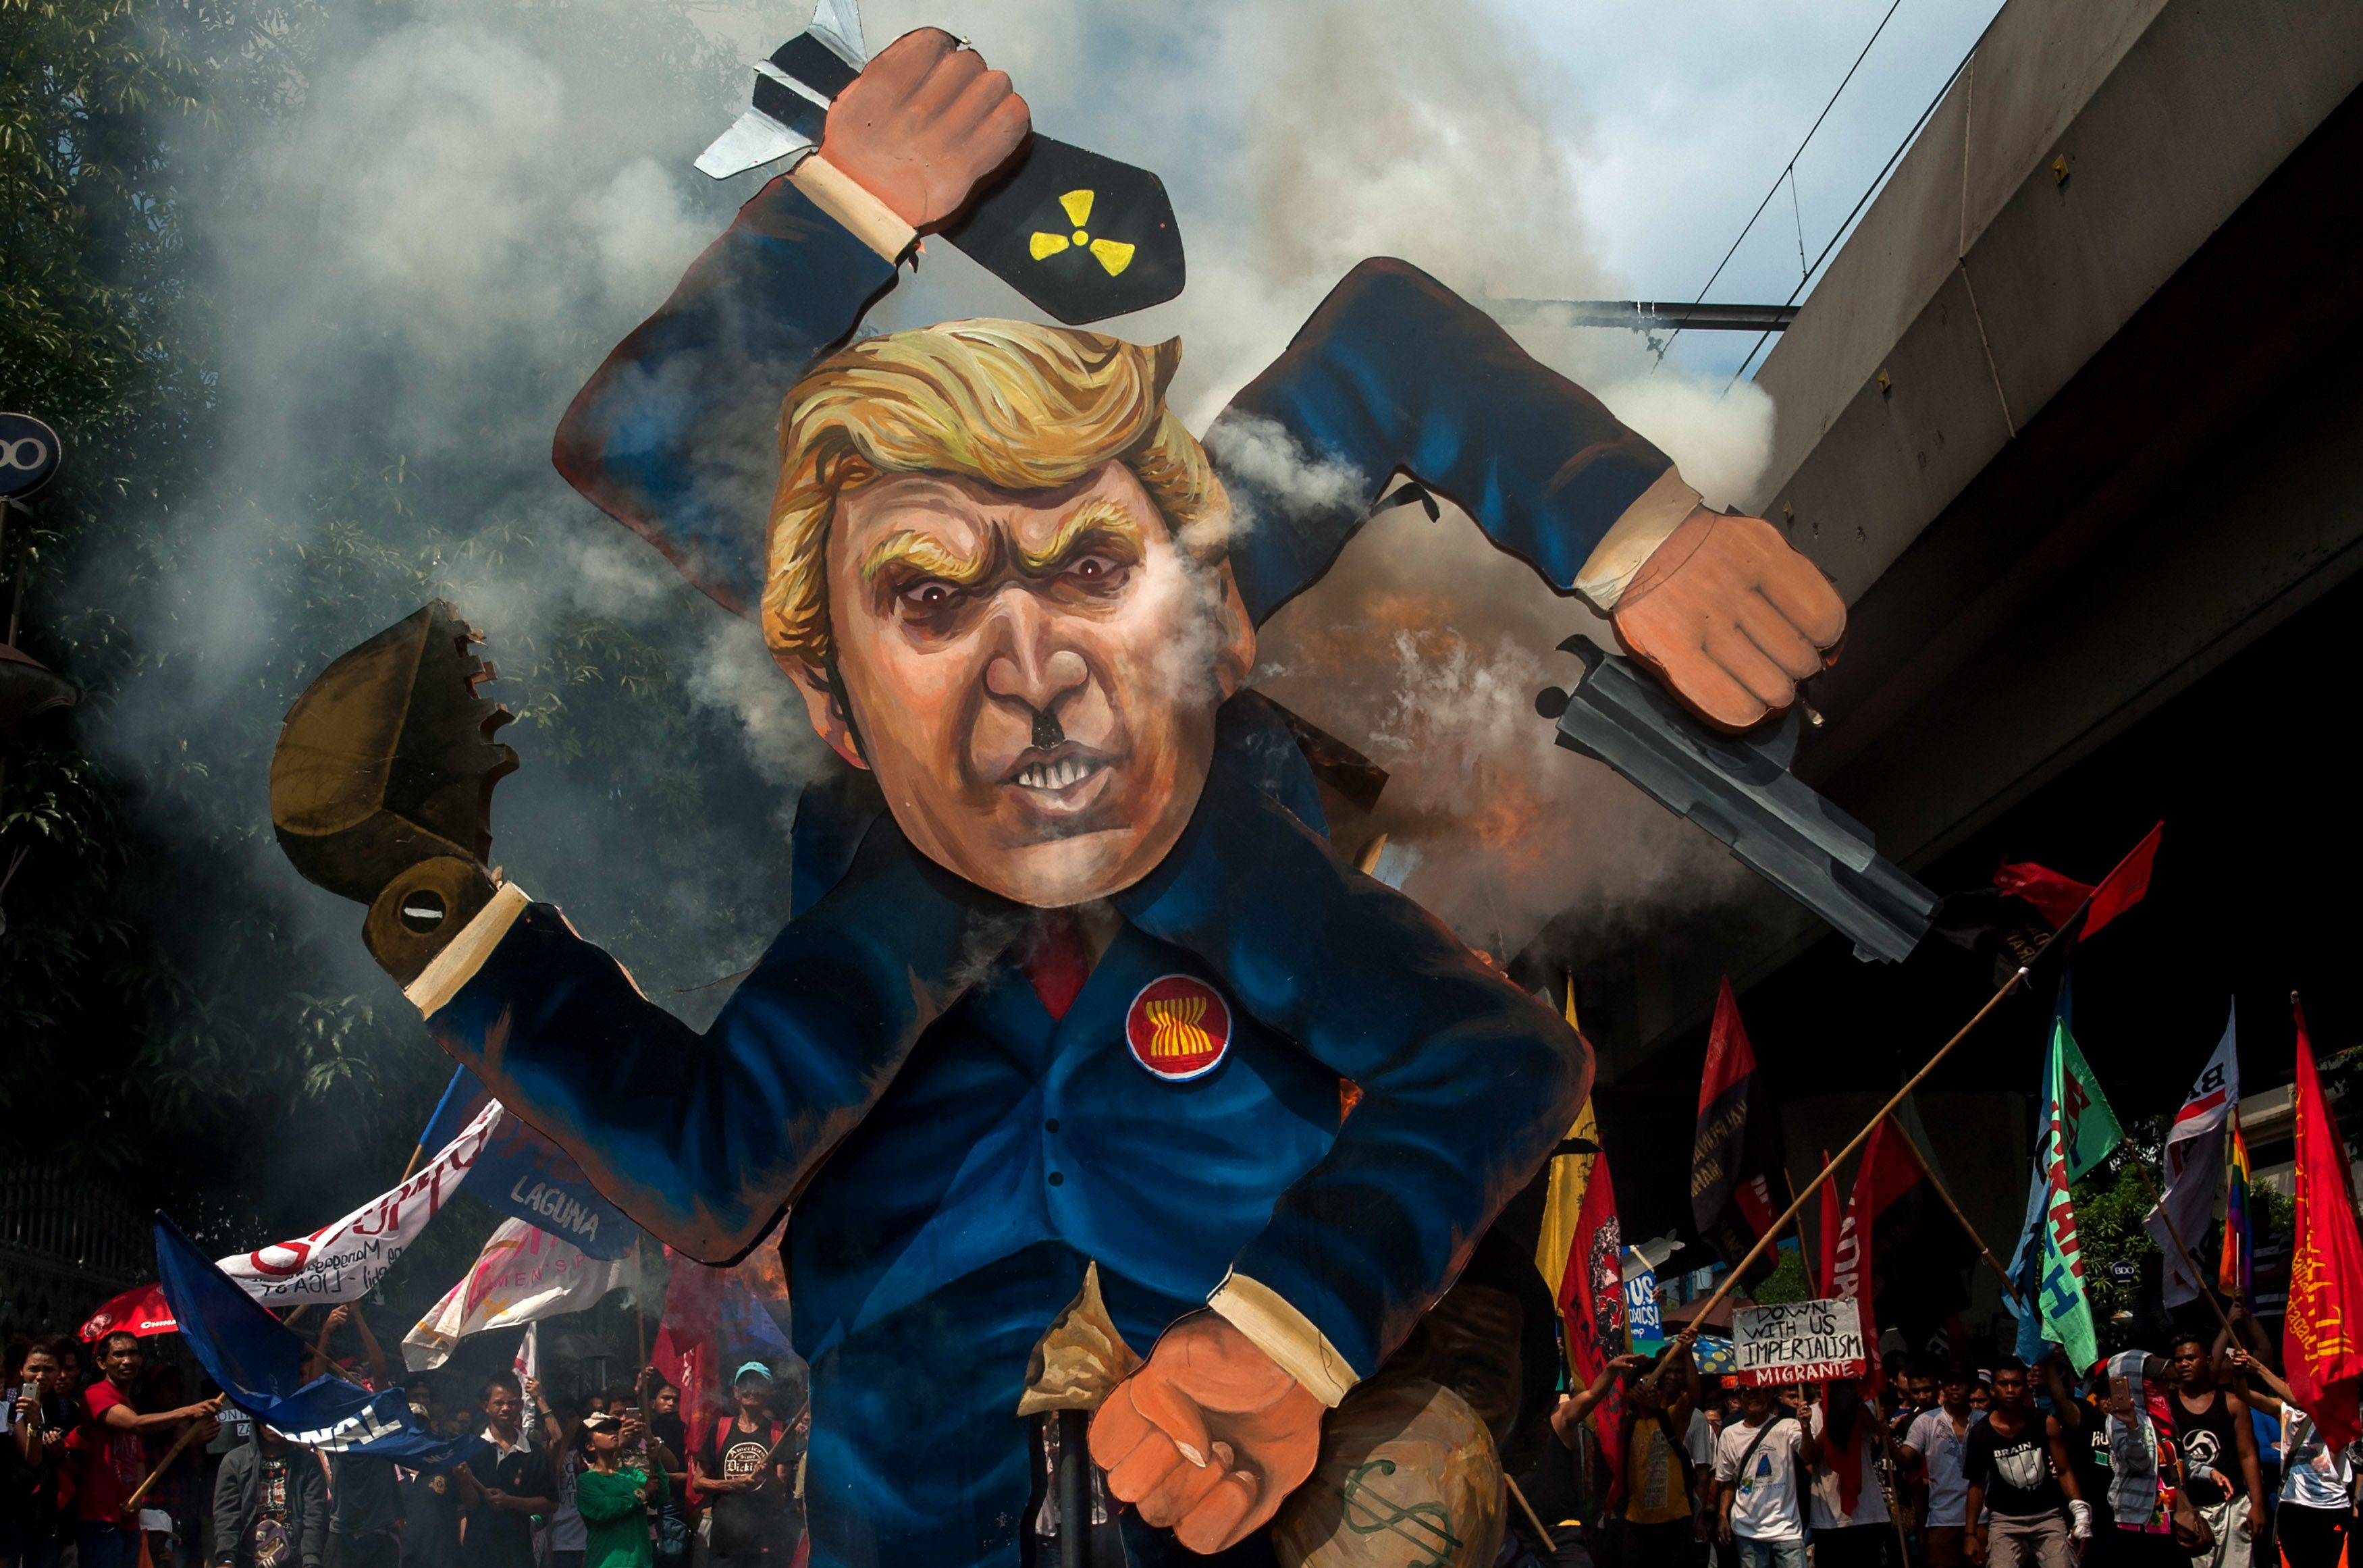 MANILA, PHILIPPINES - NOVEMBER 13: Protesters burn an image of US President Donald Trump fashioned on a swastika as they march the streets of Manila during the start of the ASEAN meetings between heads of state on November 13, 2017 in Manila, Philippines. Thousands of Filipinos protested in Manila as U.S. President Donald Trump's attended the ASEAN meetings in the Philippines, a stop included in his 12-day Asia trip.  (Photo by Jes Aznar/Getty Images)